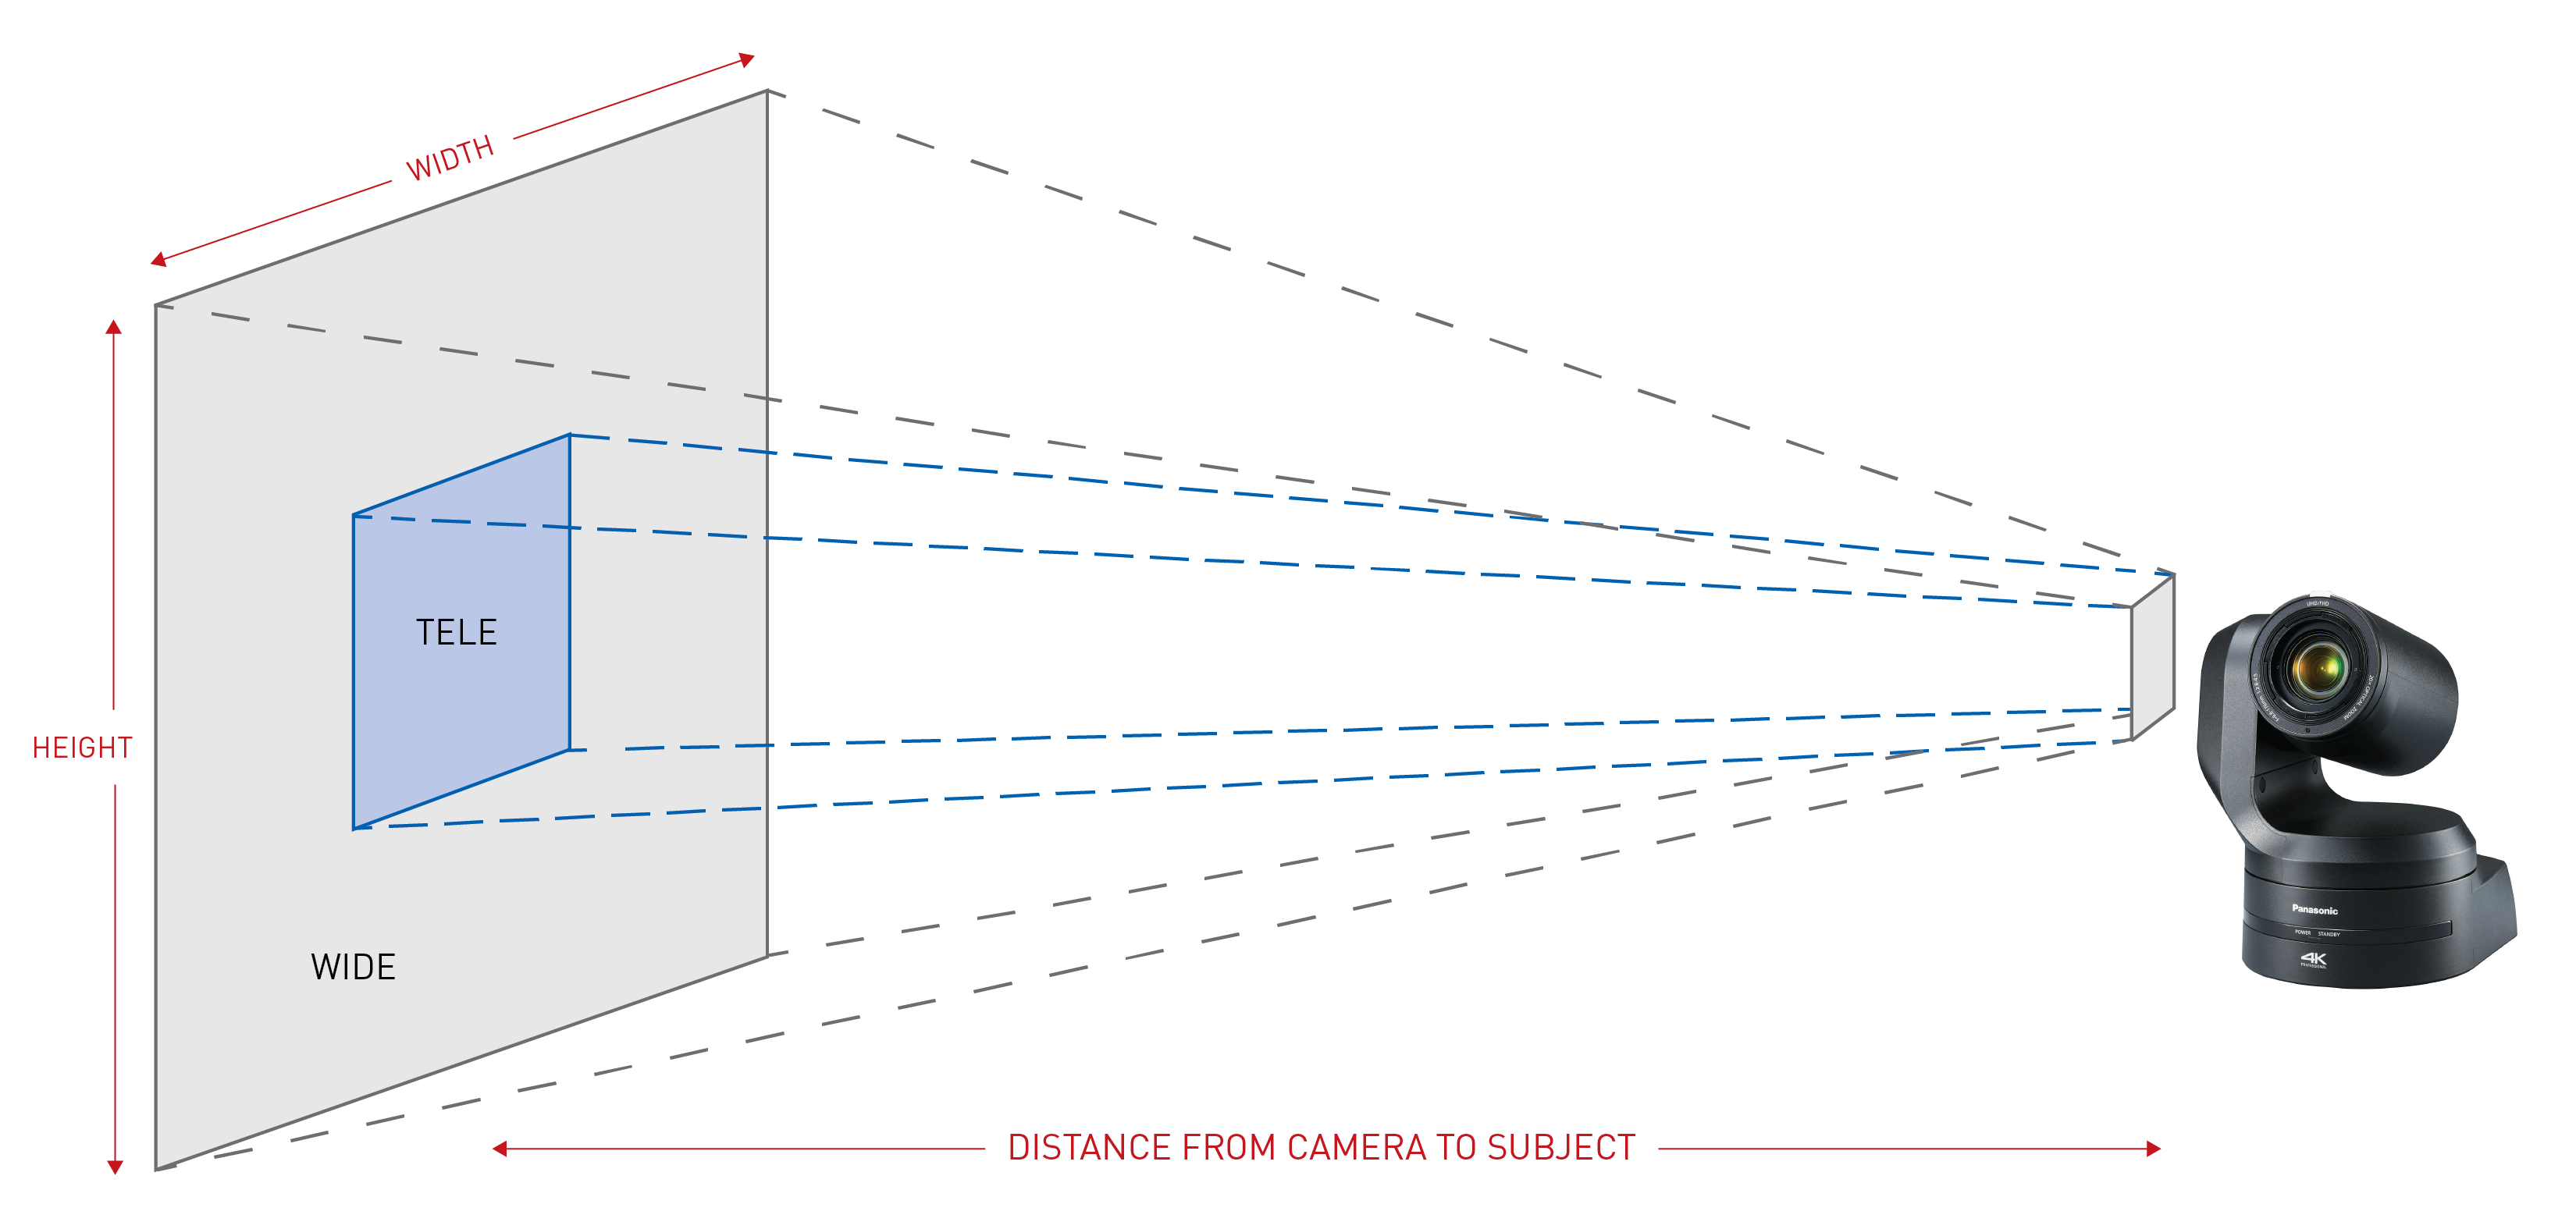 panasonic ptz camera angle of view calculator for remote camera installations camera field of view calculator